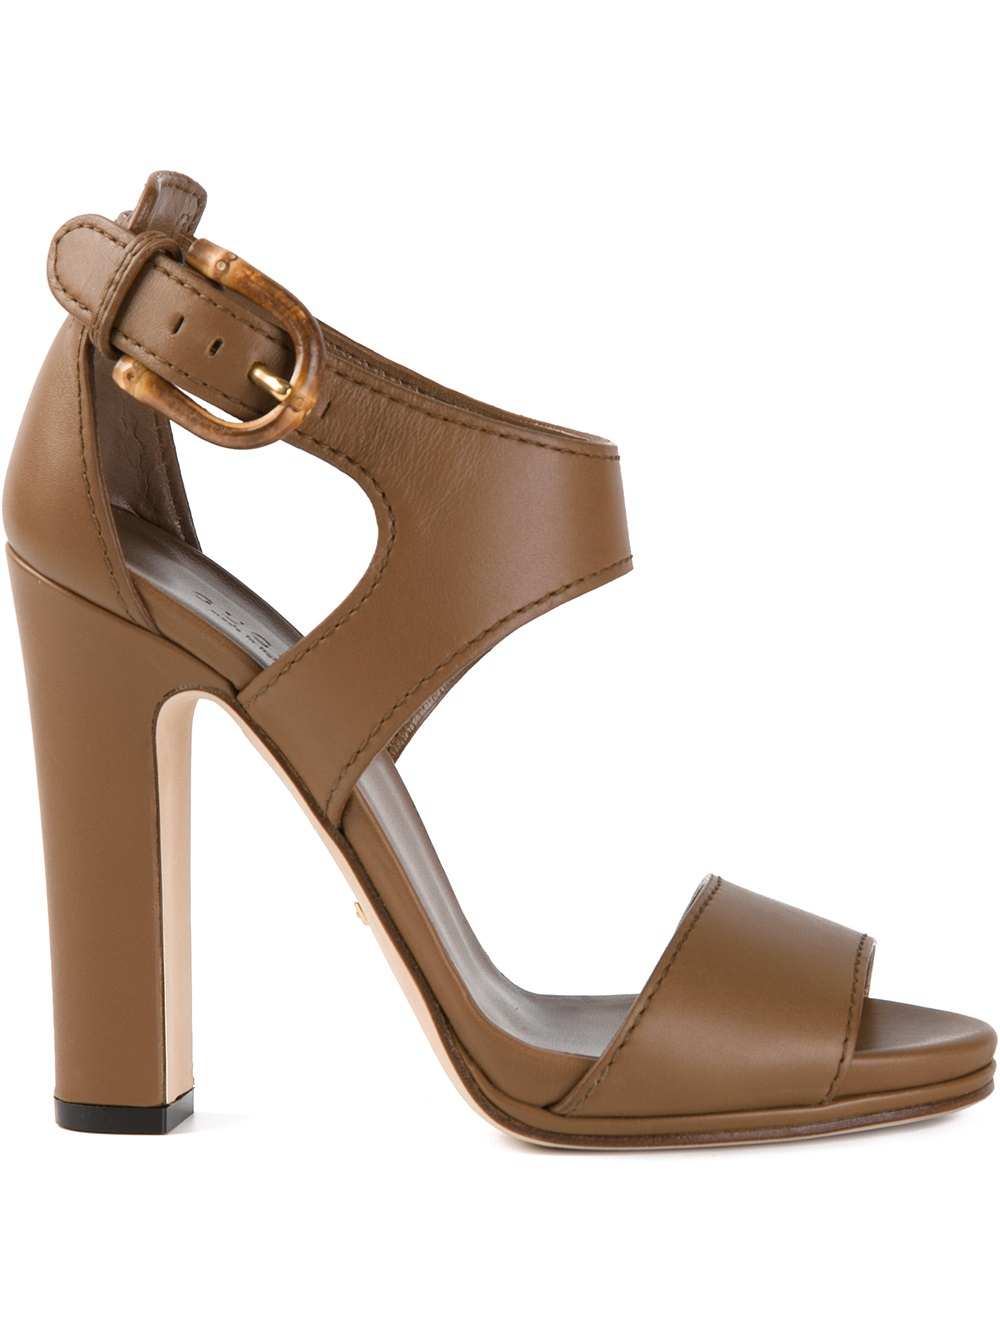 Sandals With Chunky Heel WnmfVLmS